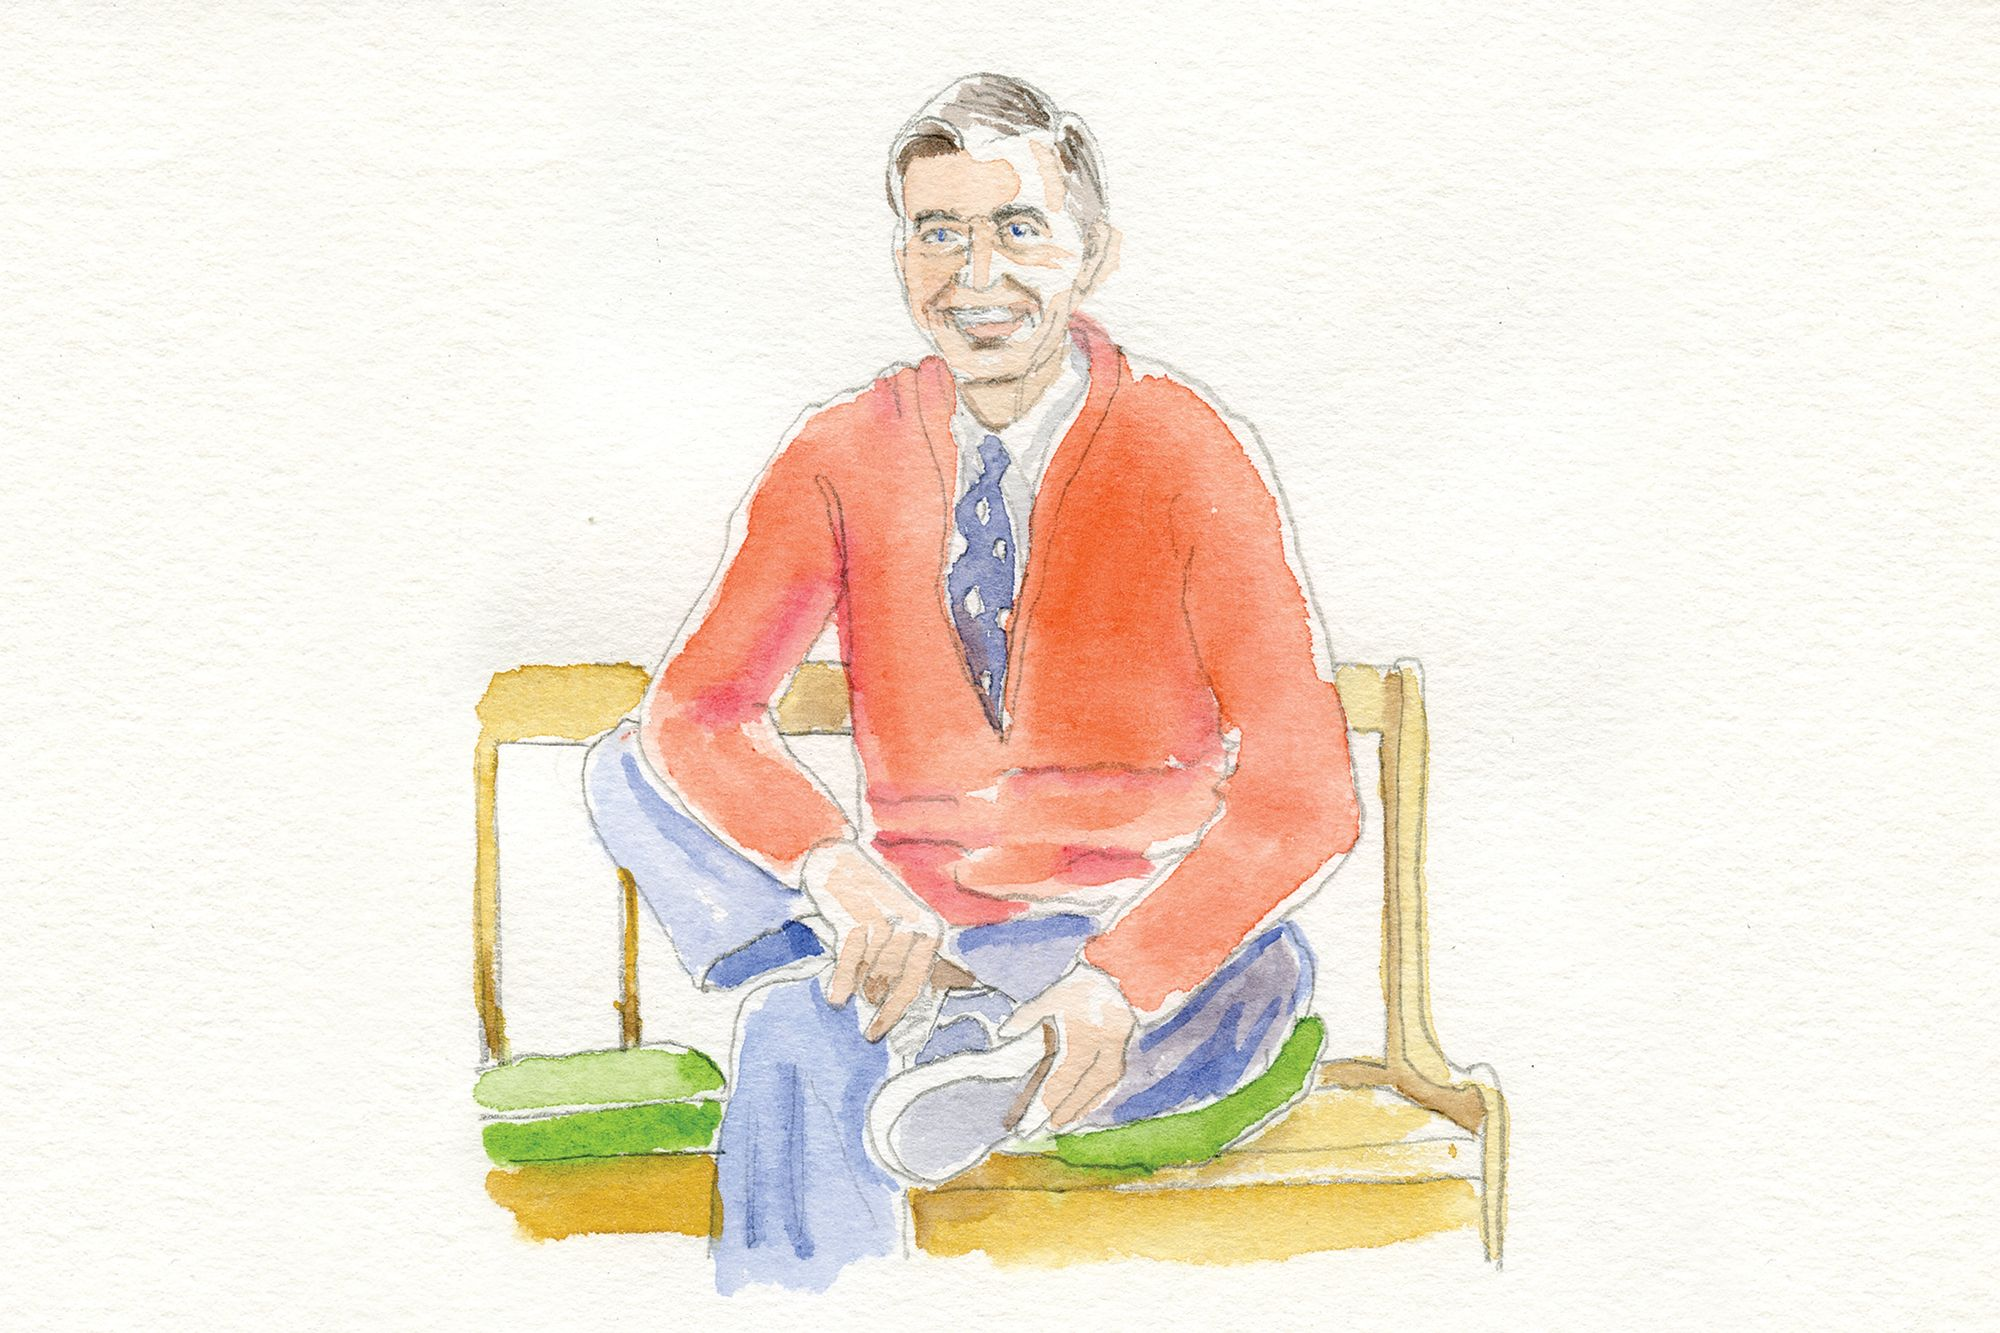 Illustration of Mister Rogers putting on his shoes.